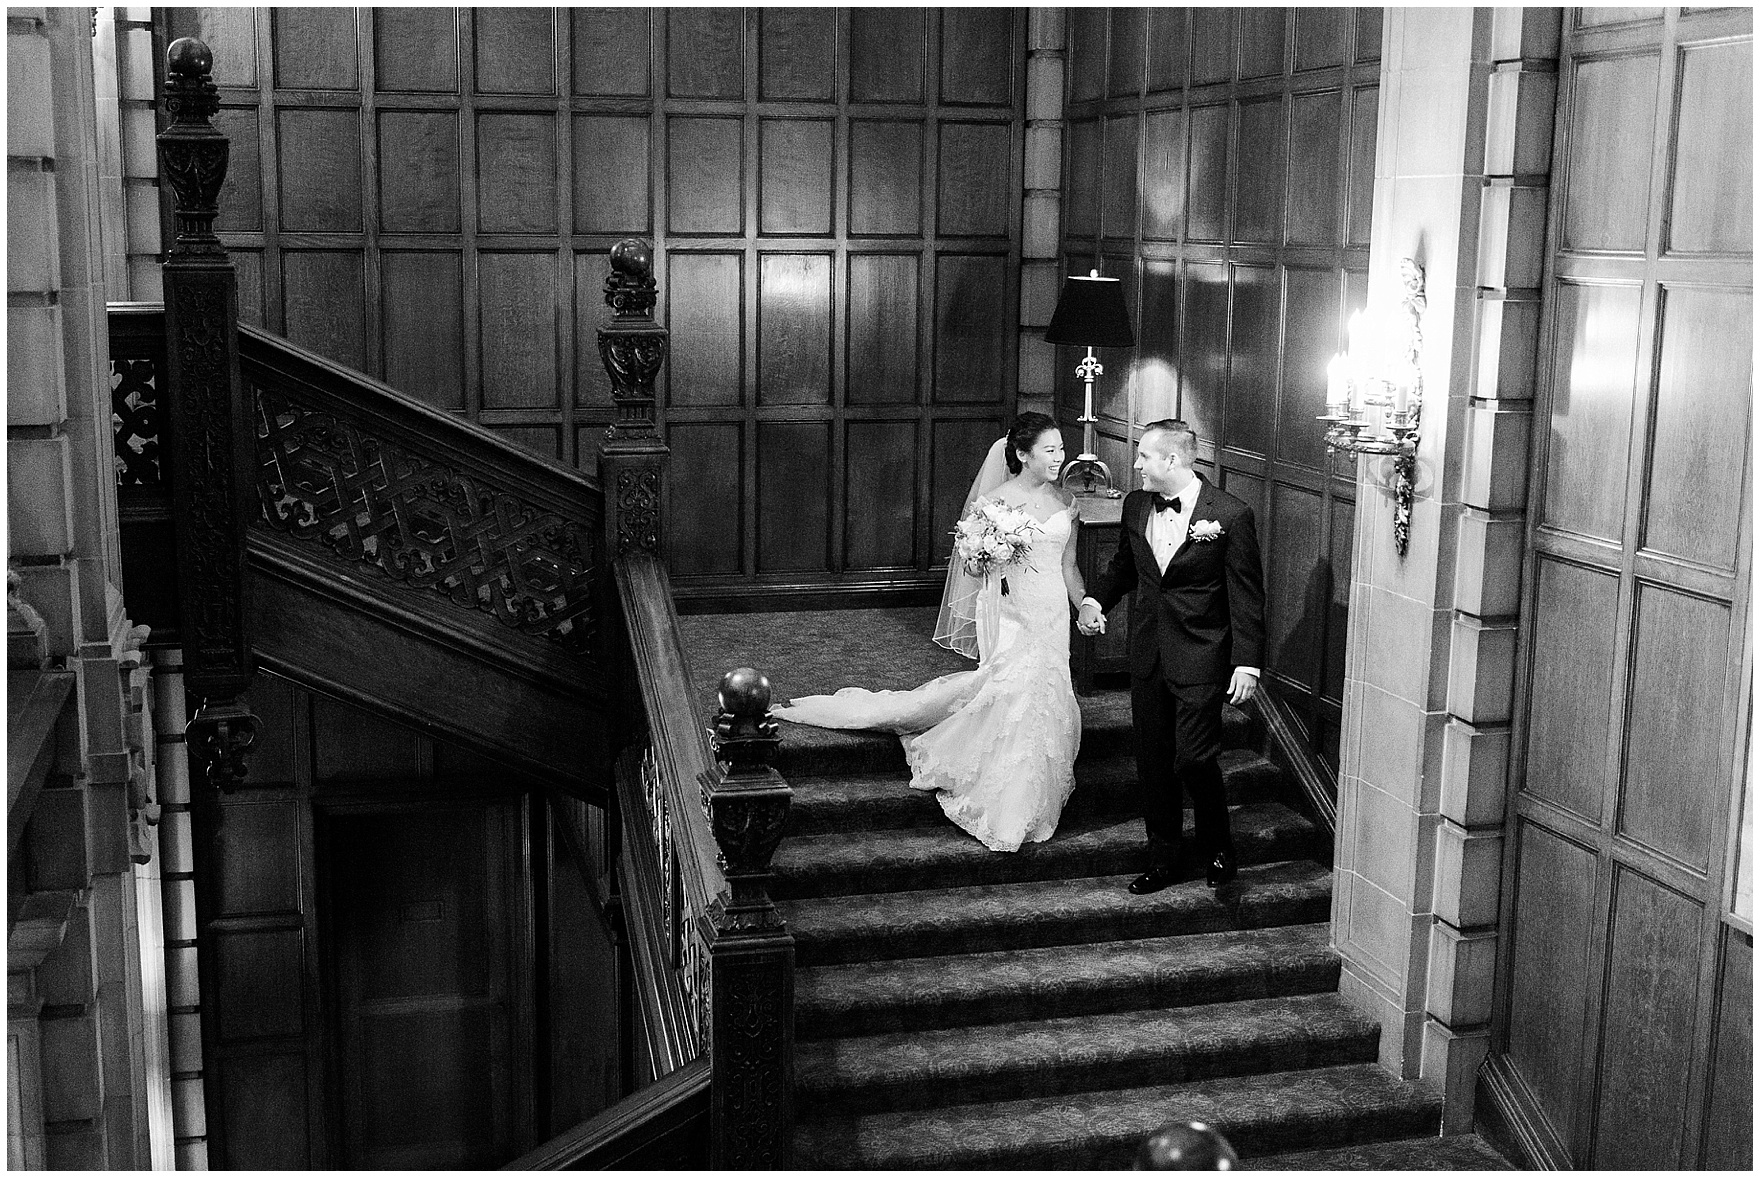 The bride and groom share their first look on the grand staircase at a University Club of Chicago wedding.